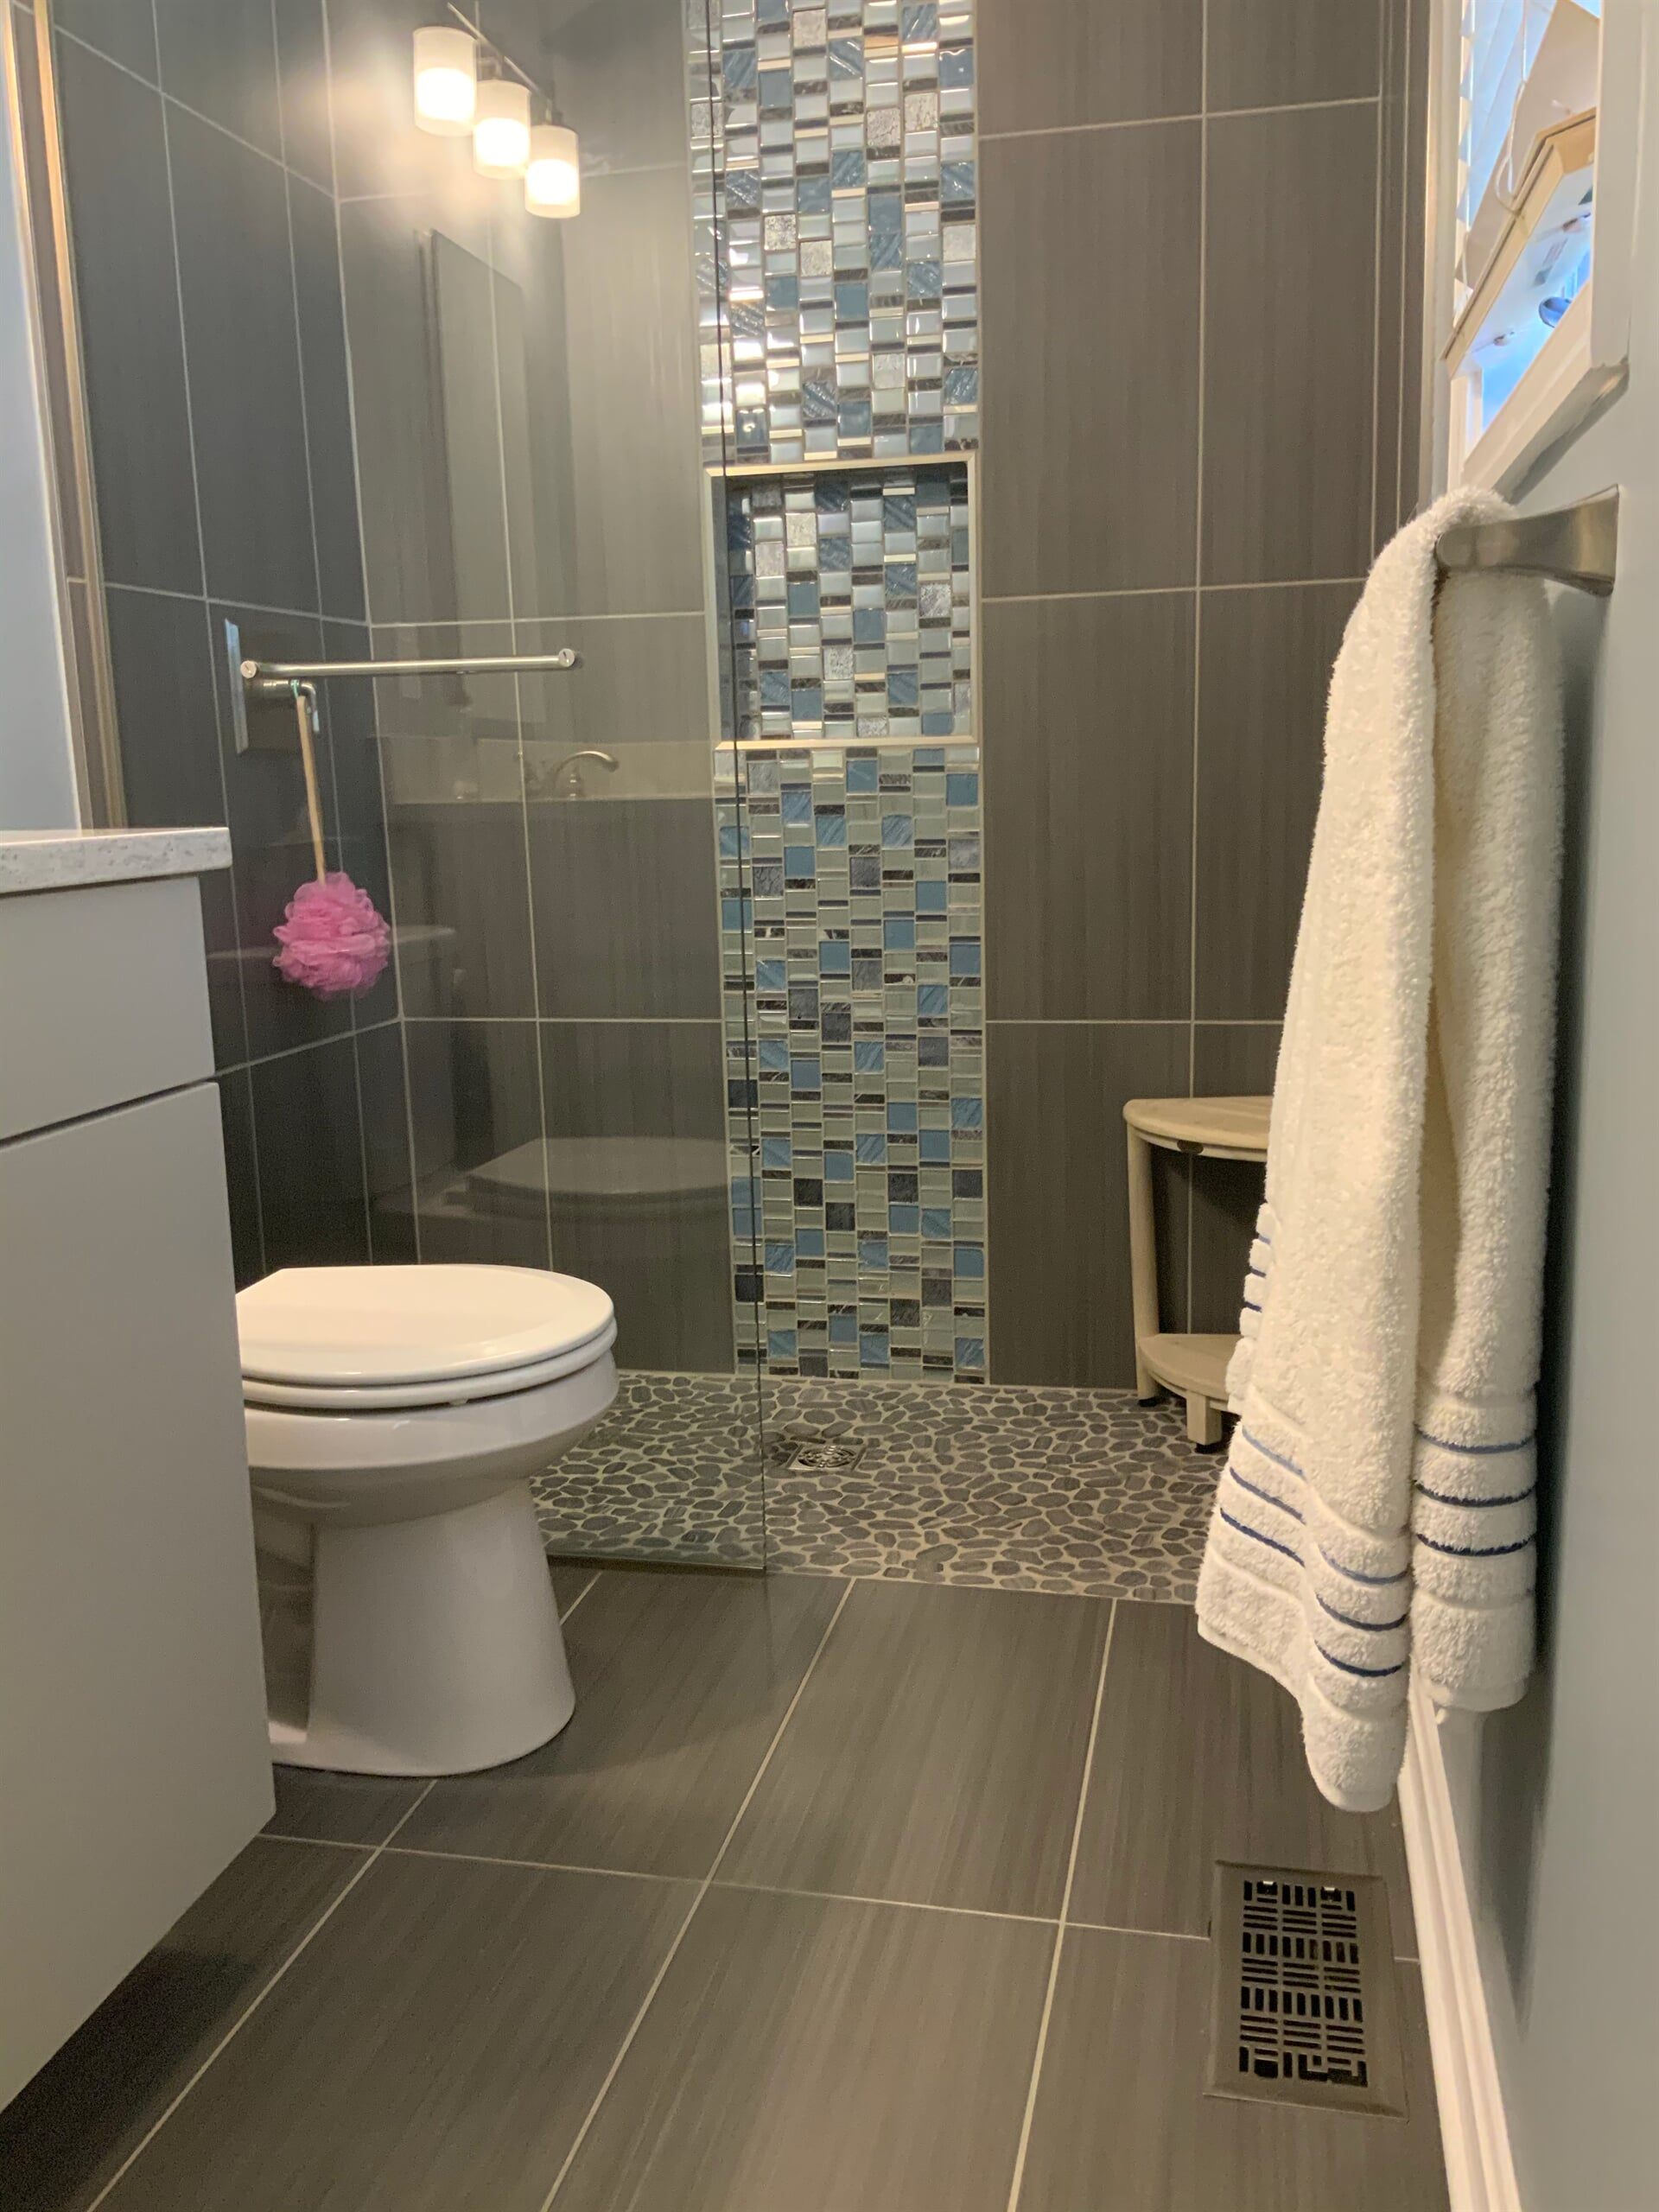 Bathroom remodeling in Leonardtown, MD by Southern Maryland Kitchen Bath Floors & Design